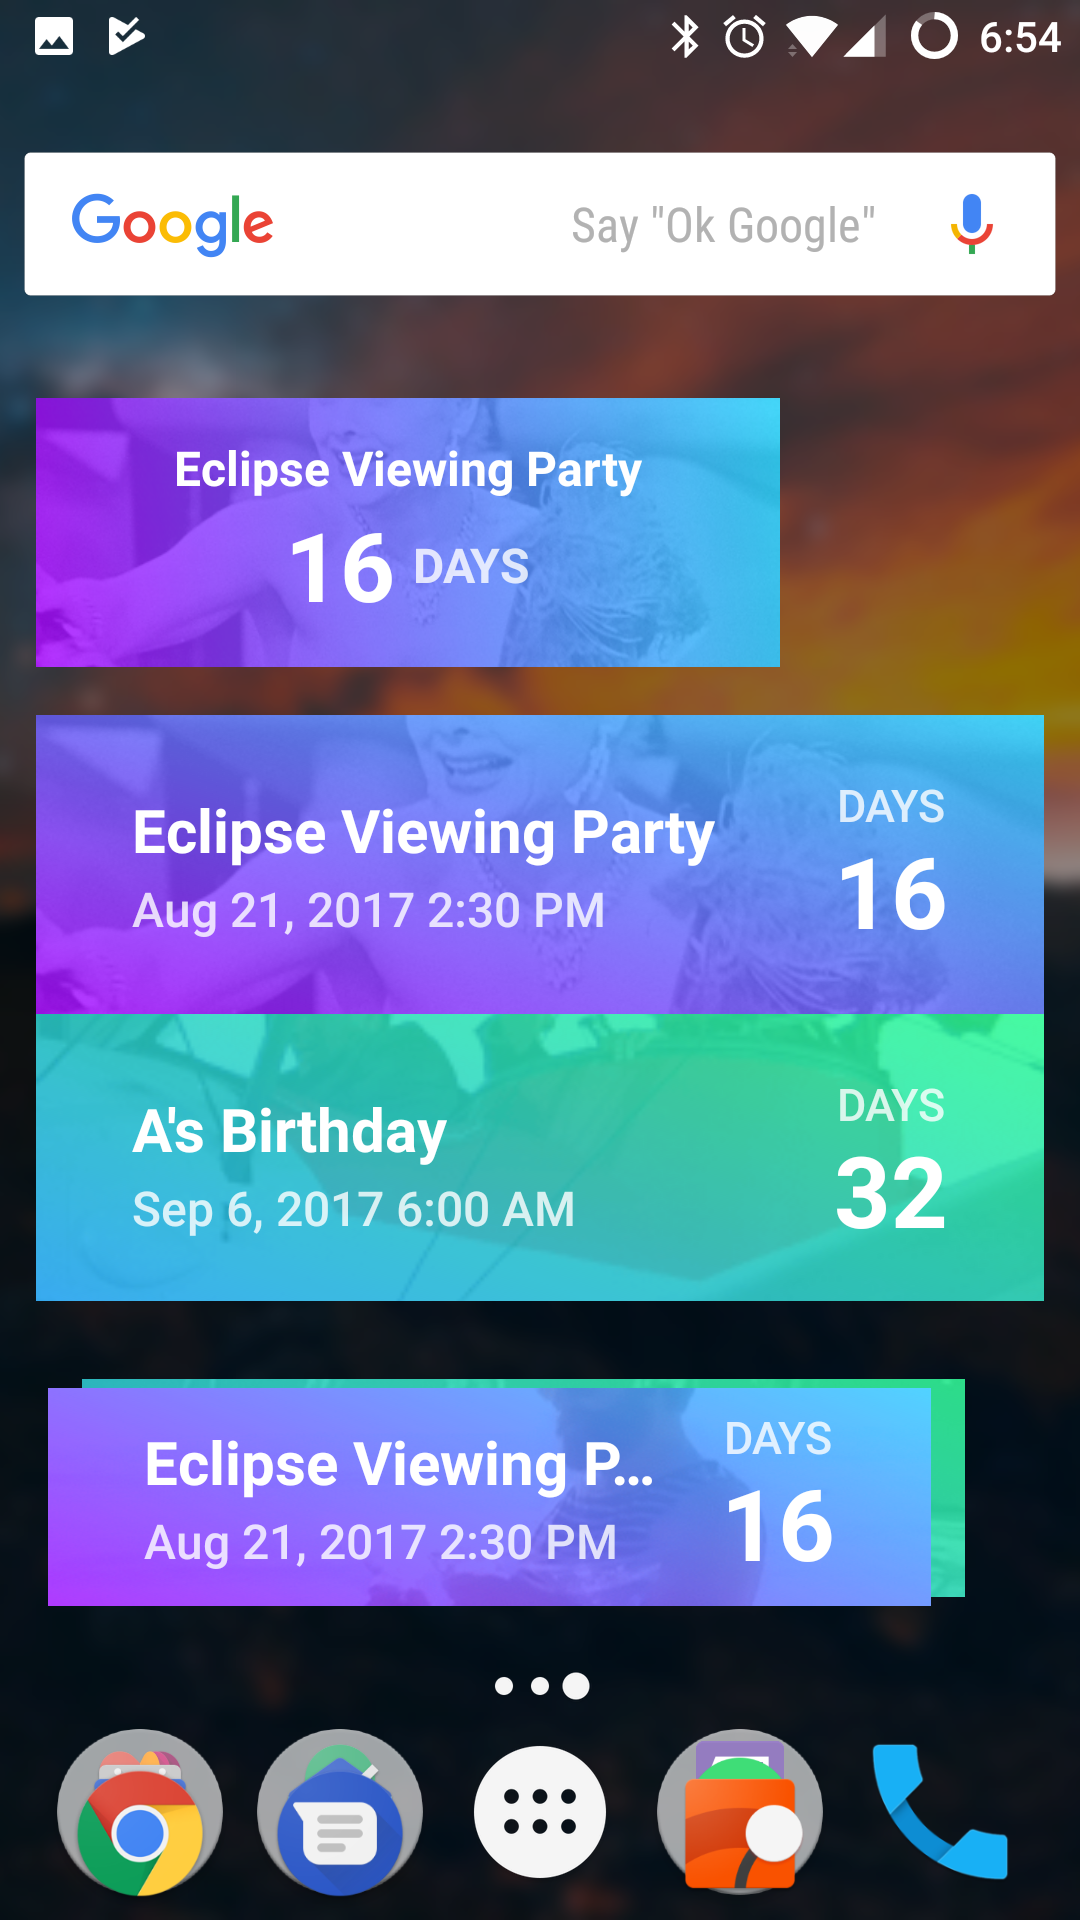 Sam Rustons New App Hurry Is A Beautiful Countdown Timer For Events